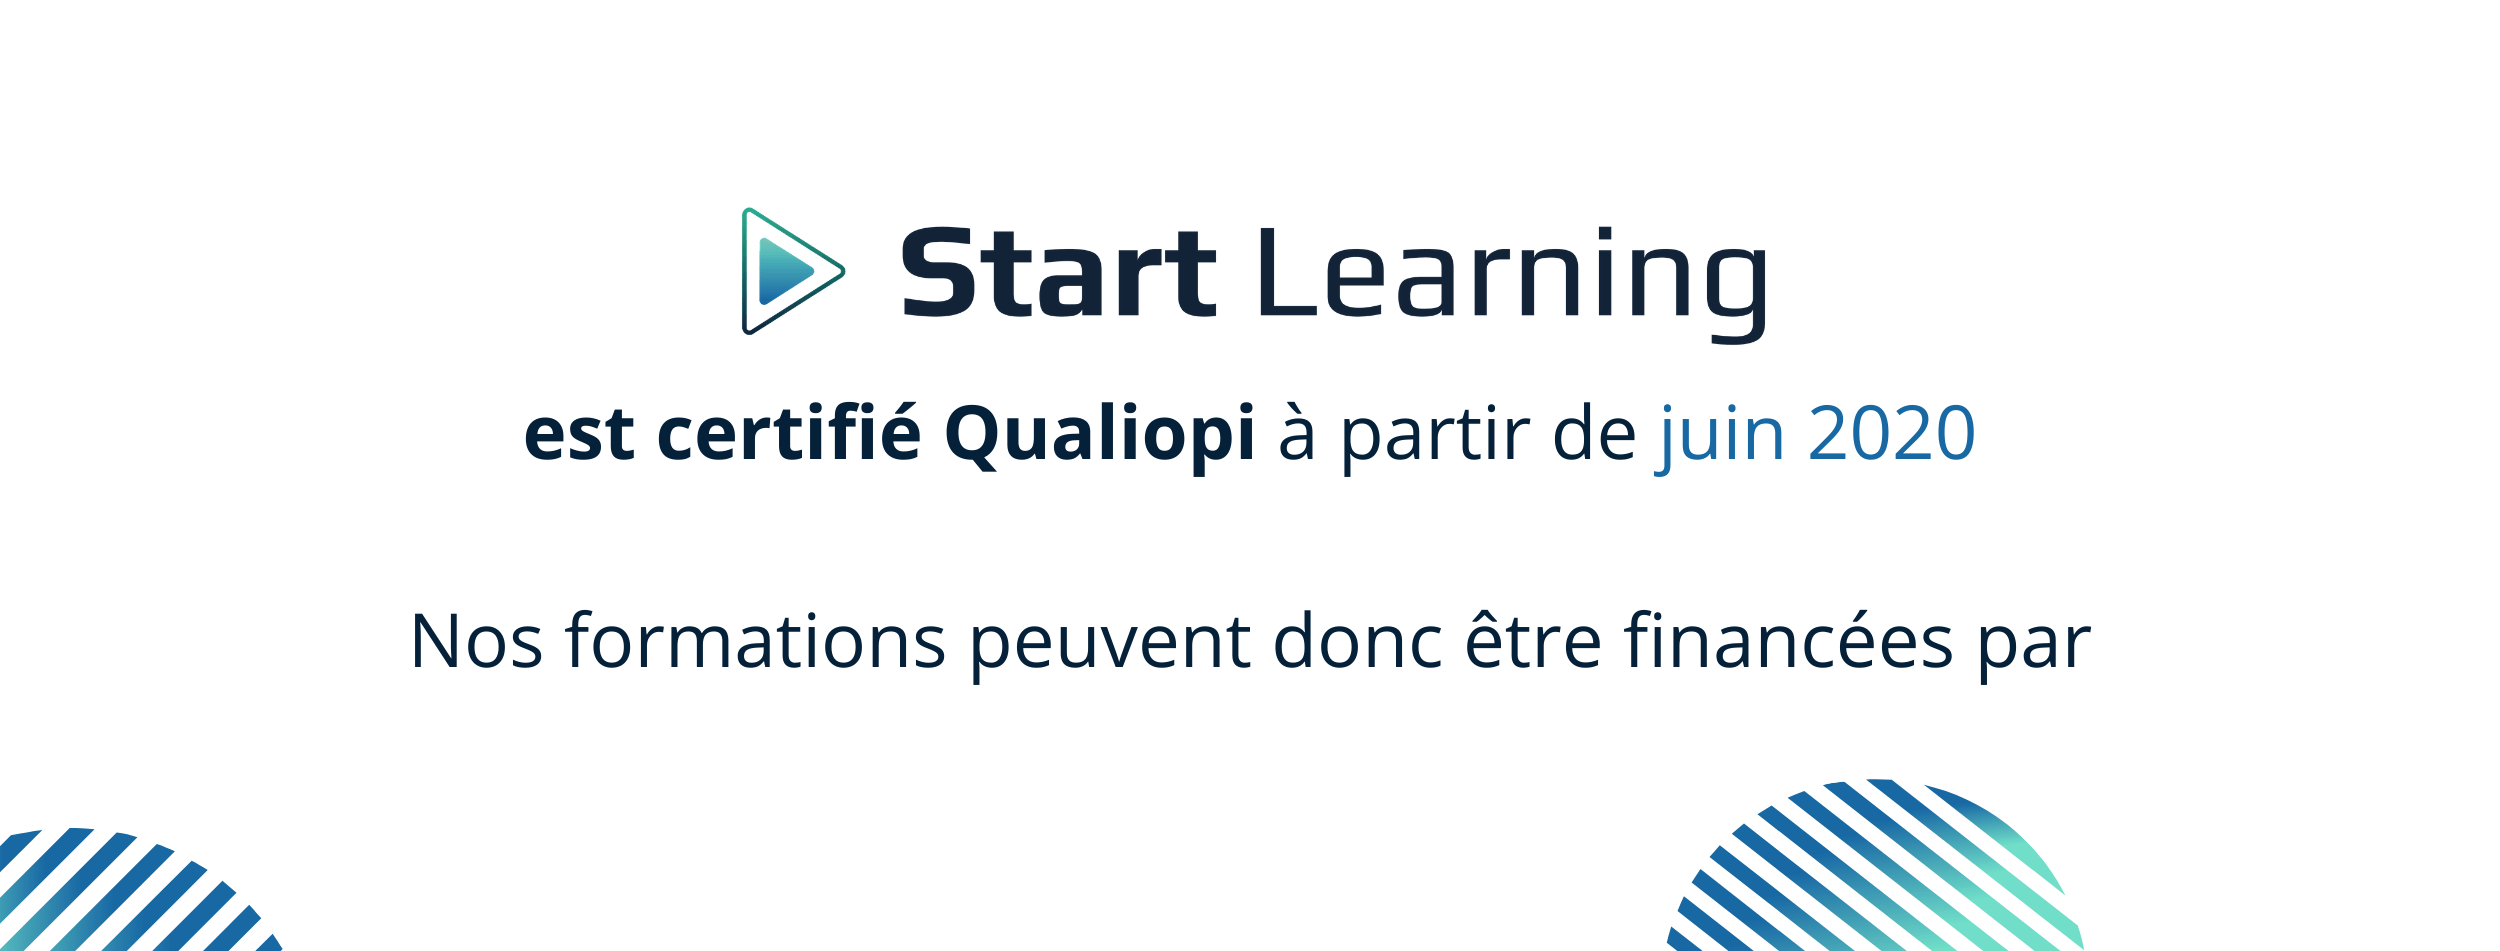 Certification Qualiopi 2 - Start Learning